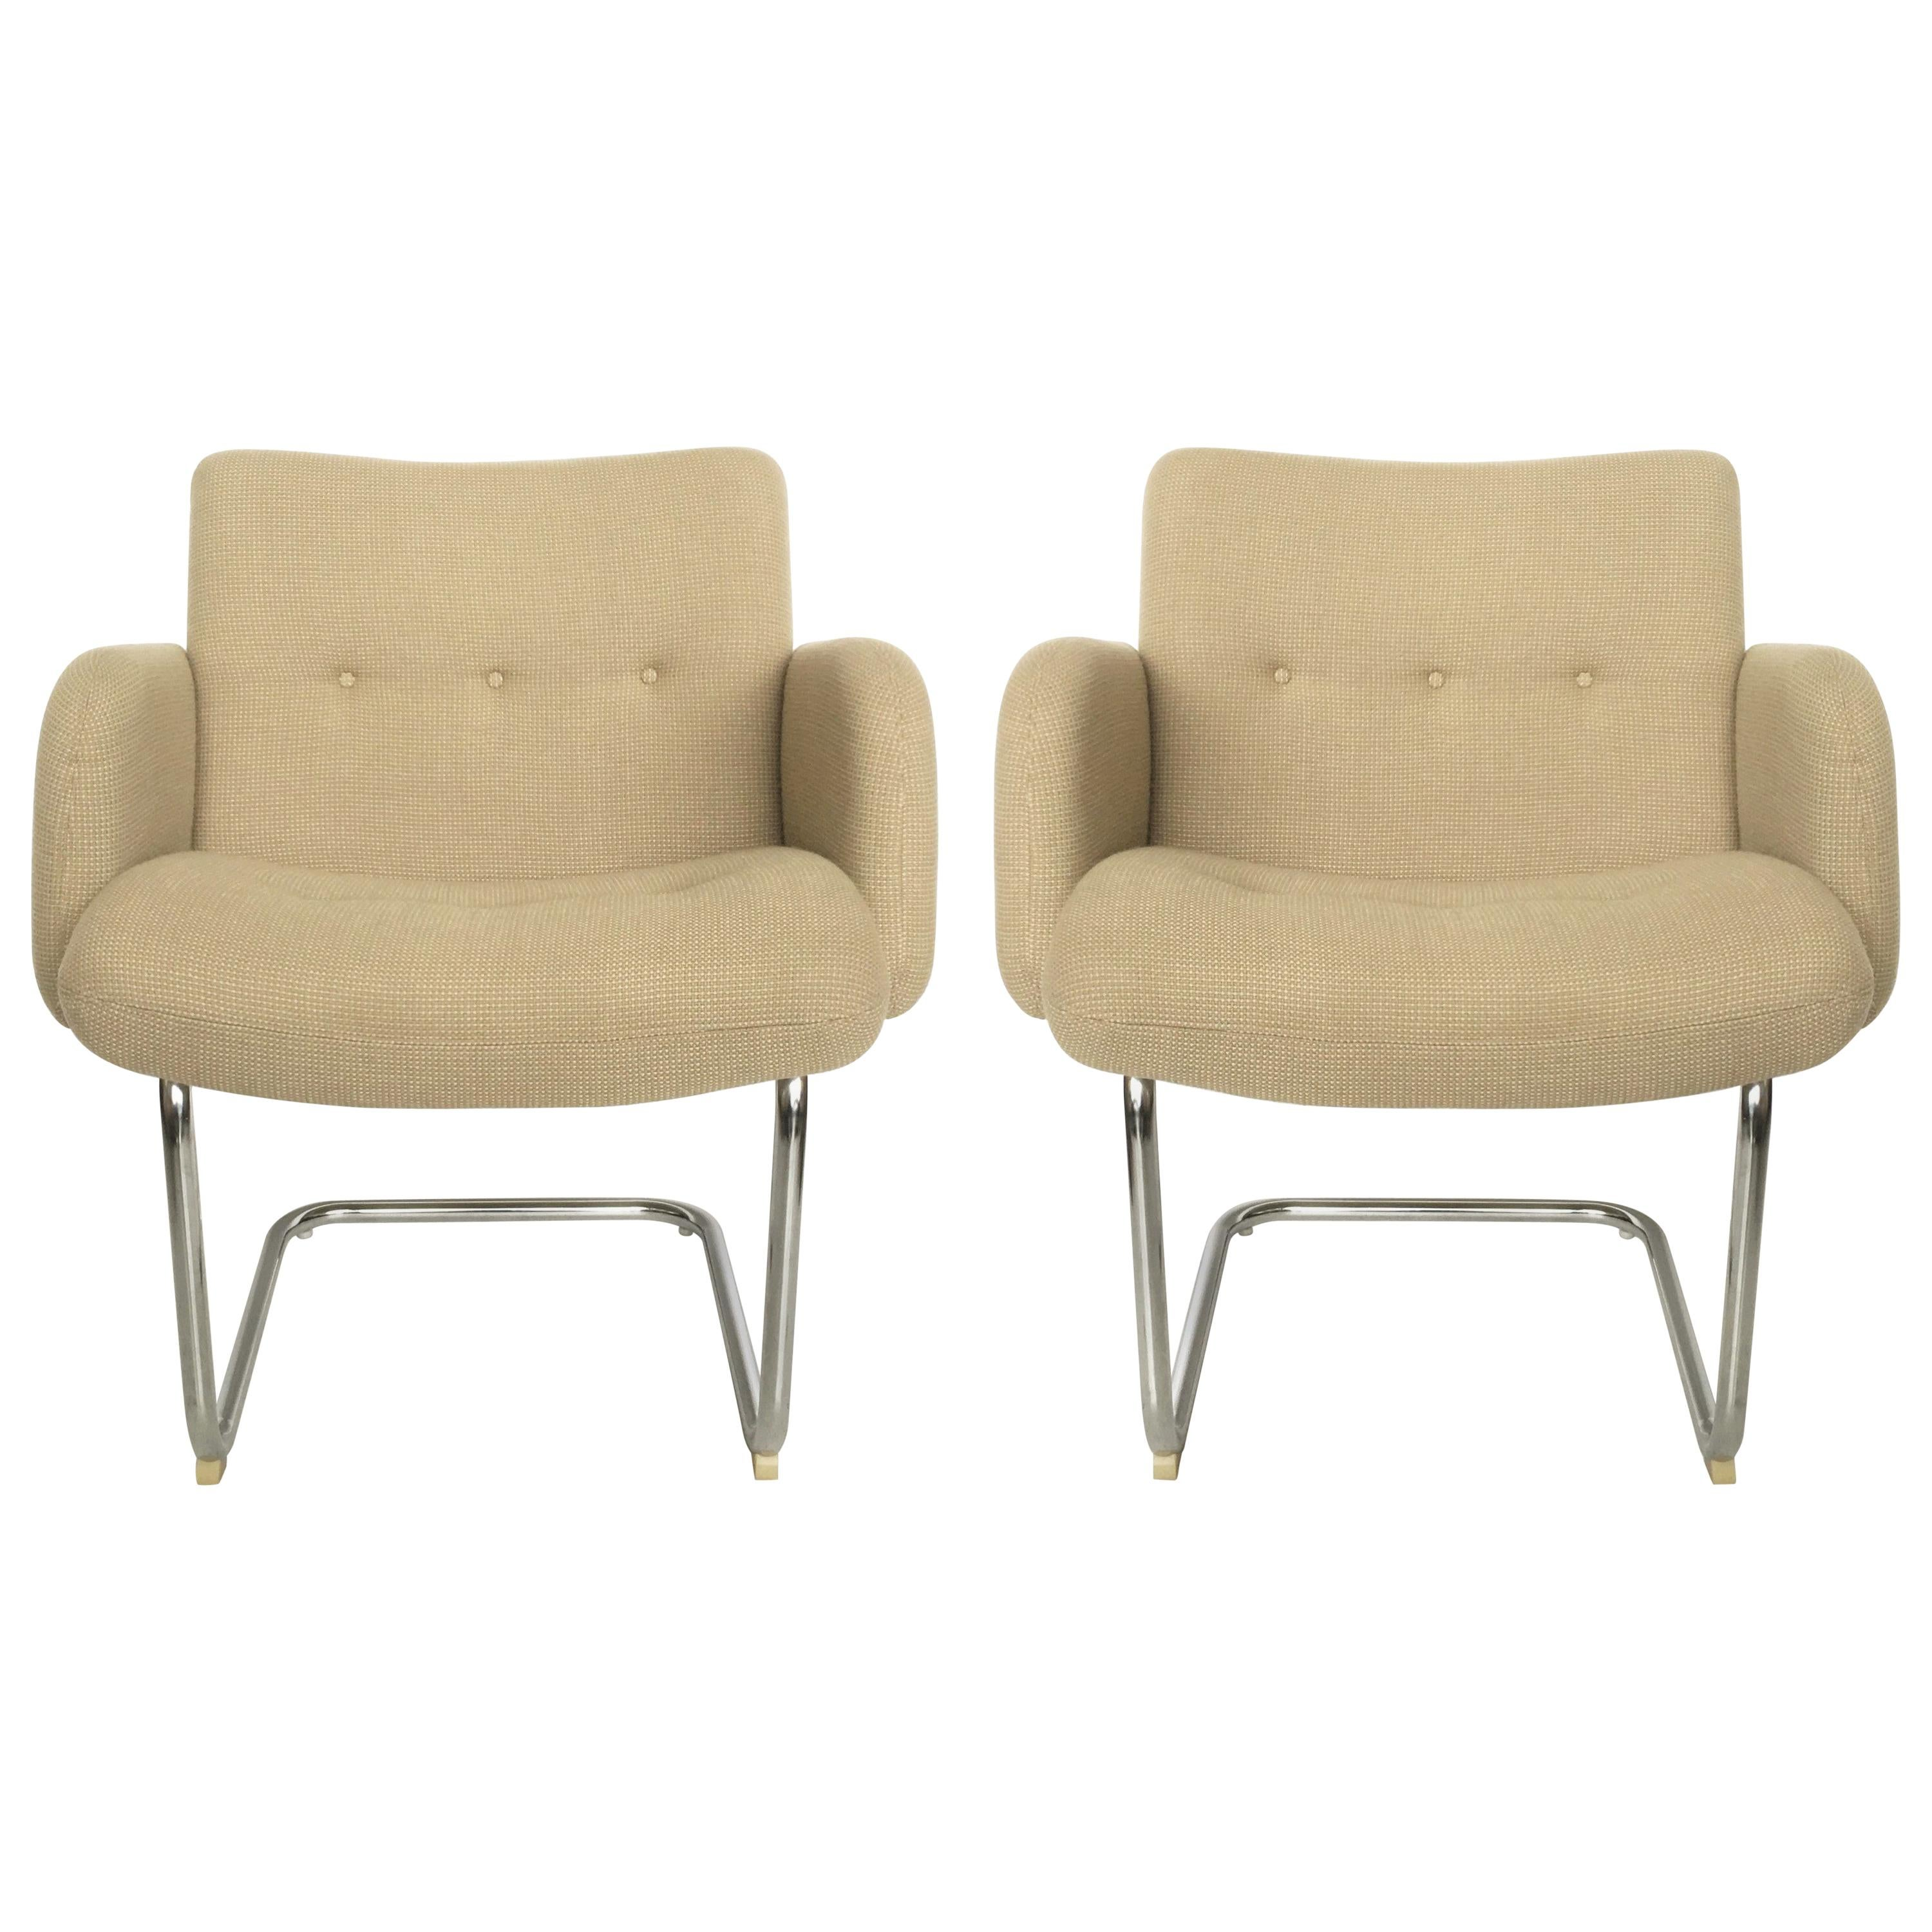 Pair of Mid-Century Modern Harvey Probber Cantilevered Chairs